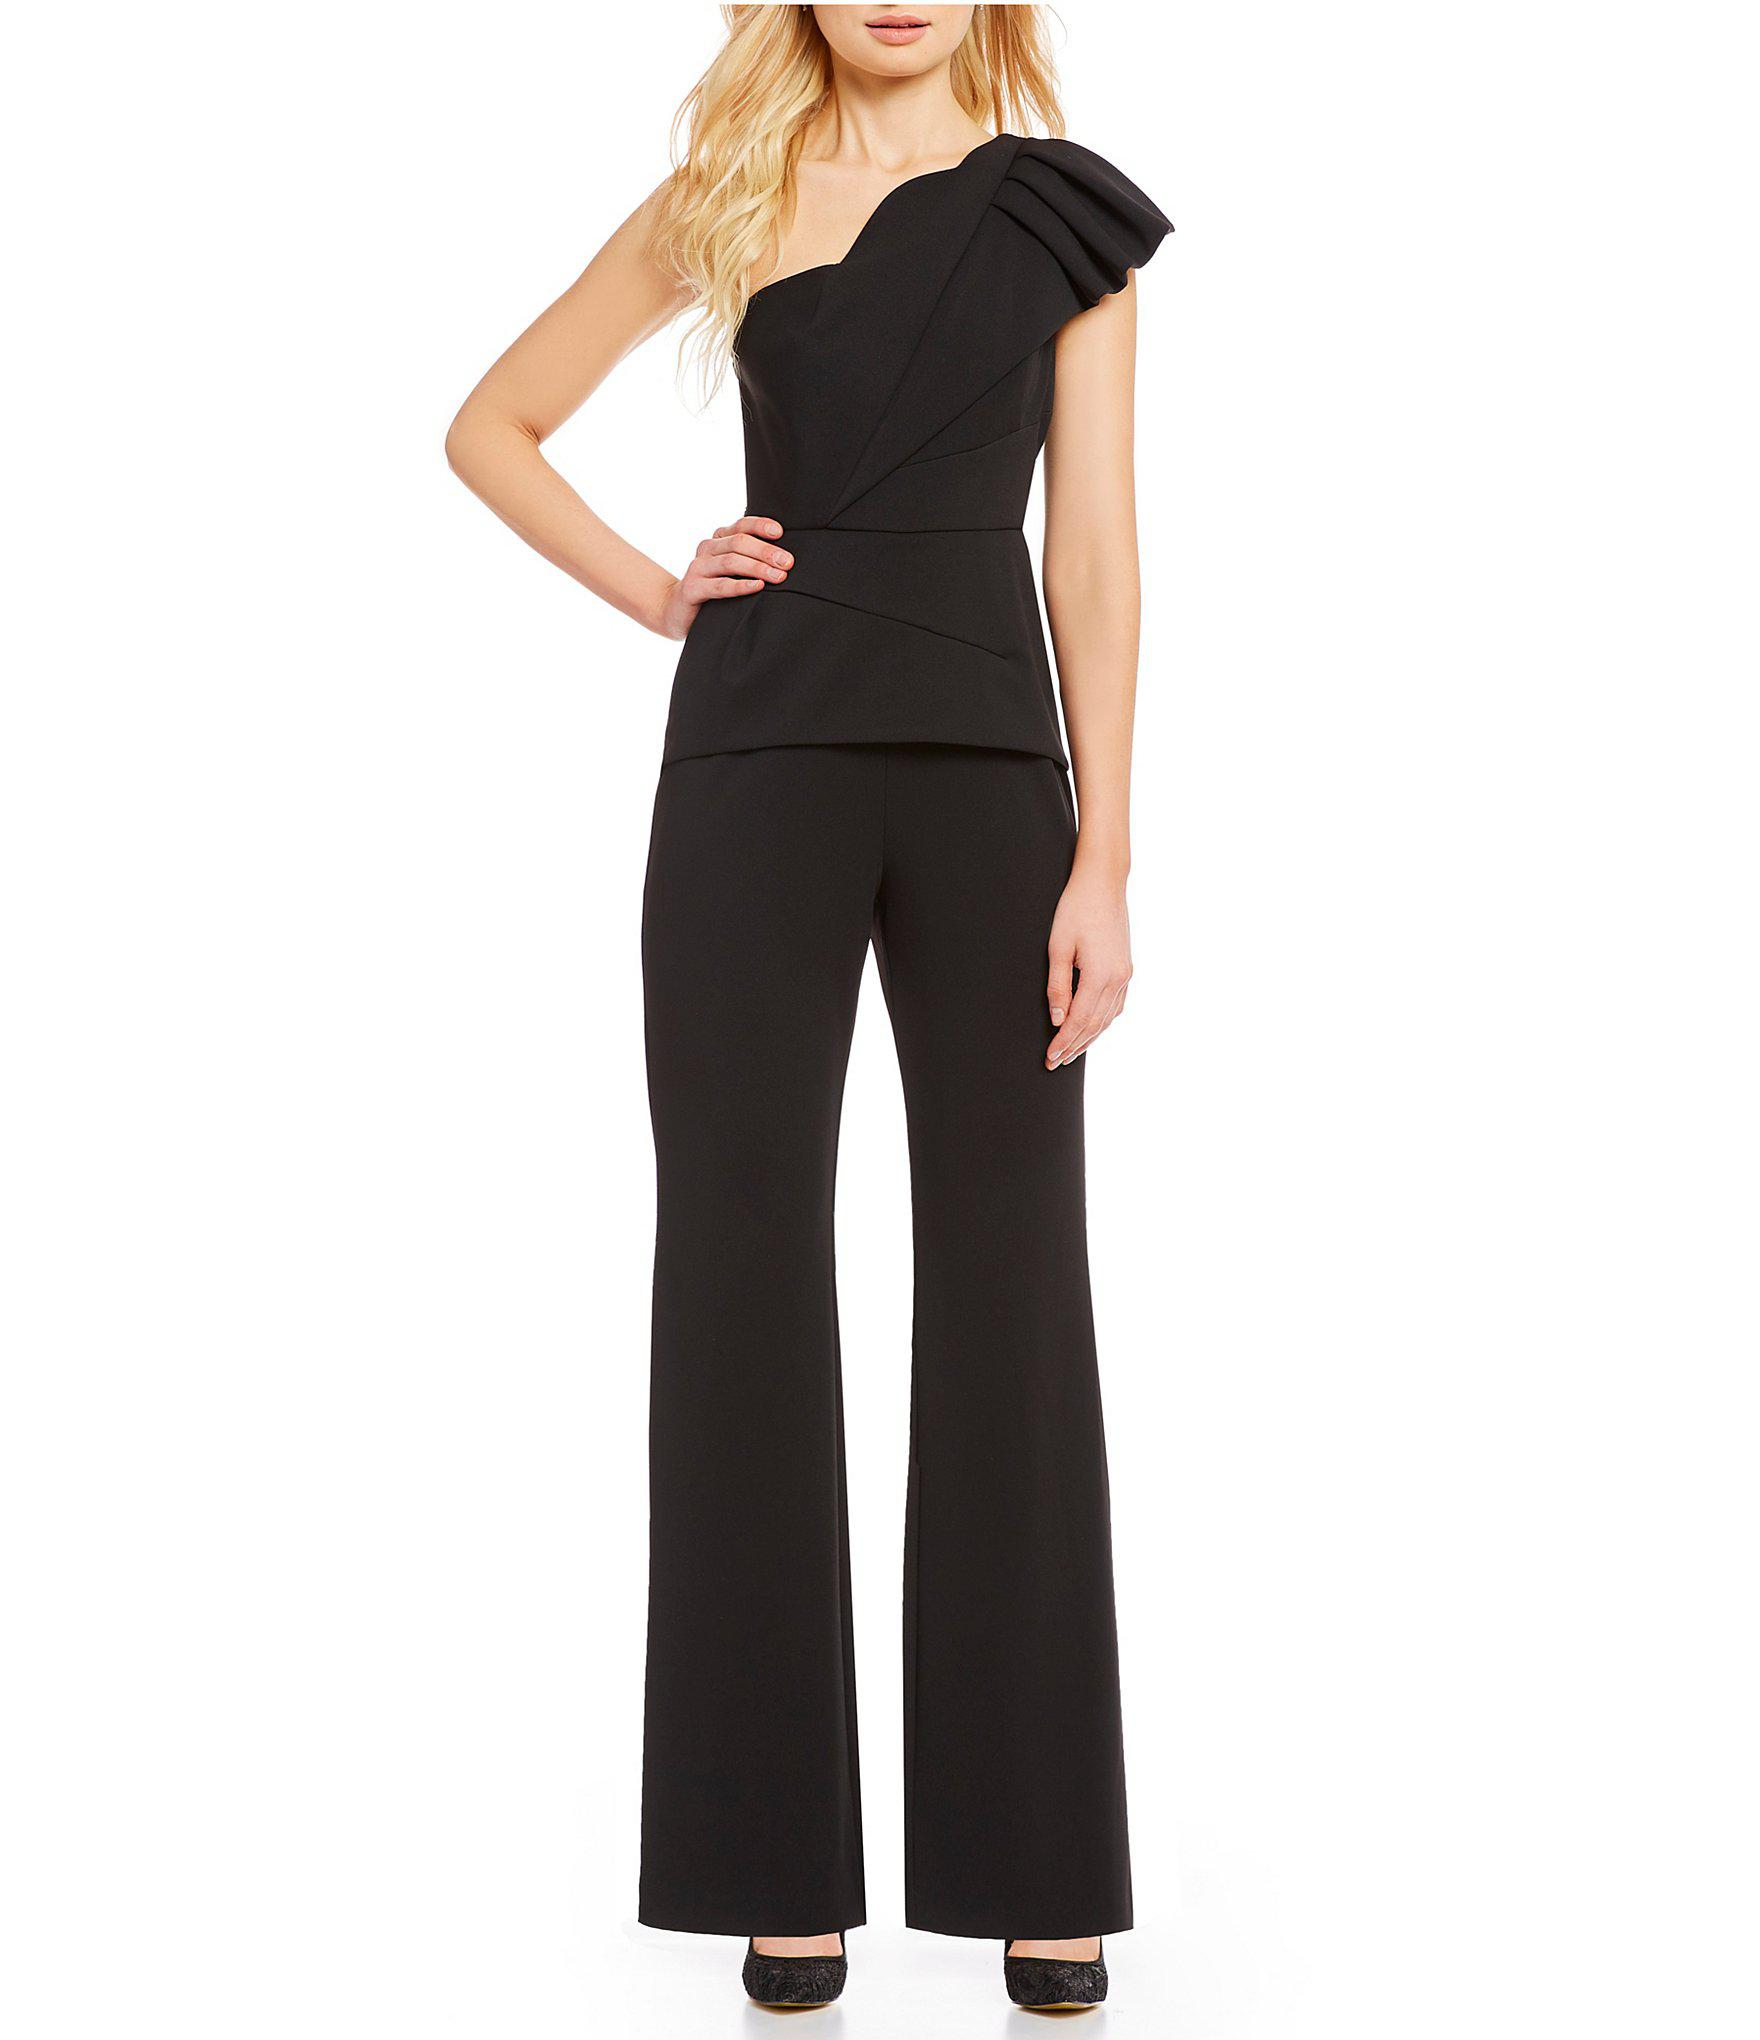 27c32c053f4 Adrianna Papell. Women s Black Petite Size One Shoulder Ruffle Jumpsuit